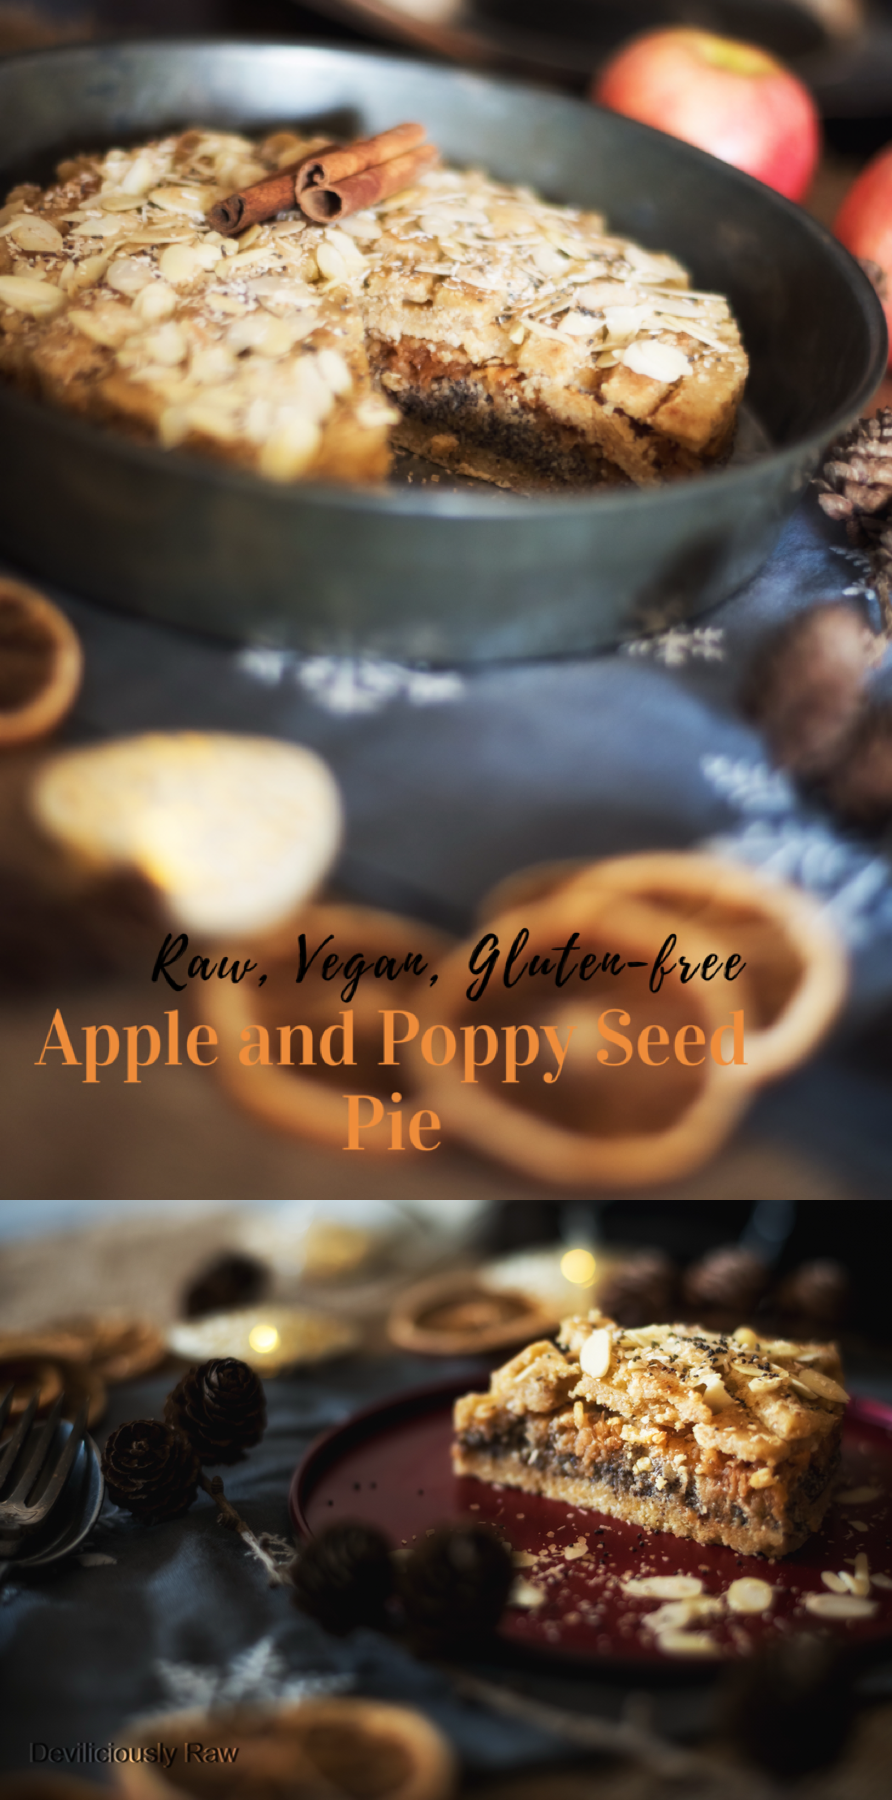 Apple and Poppy Seed Pie